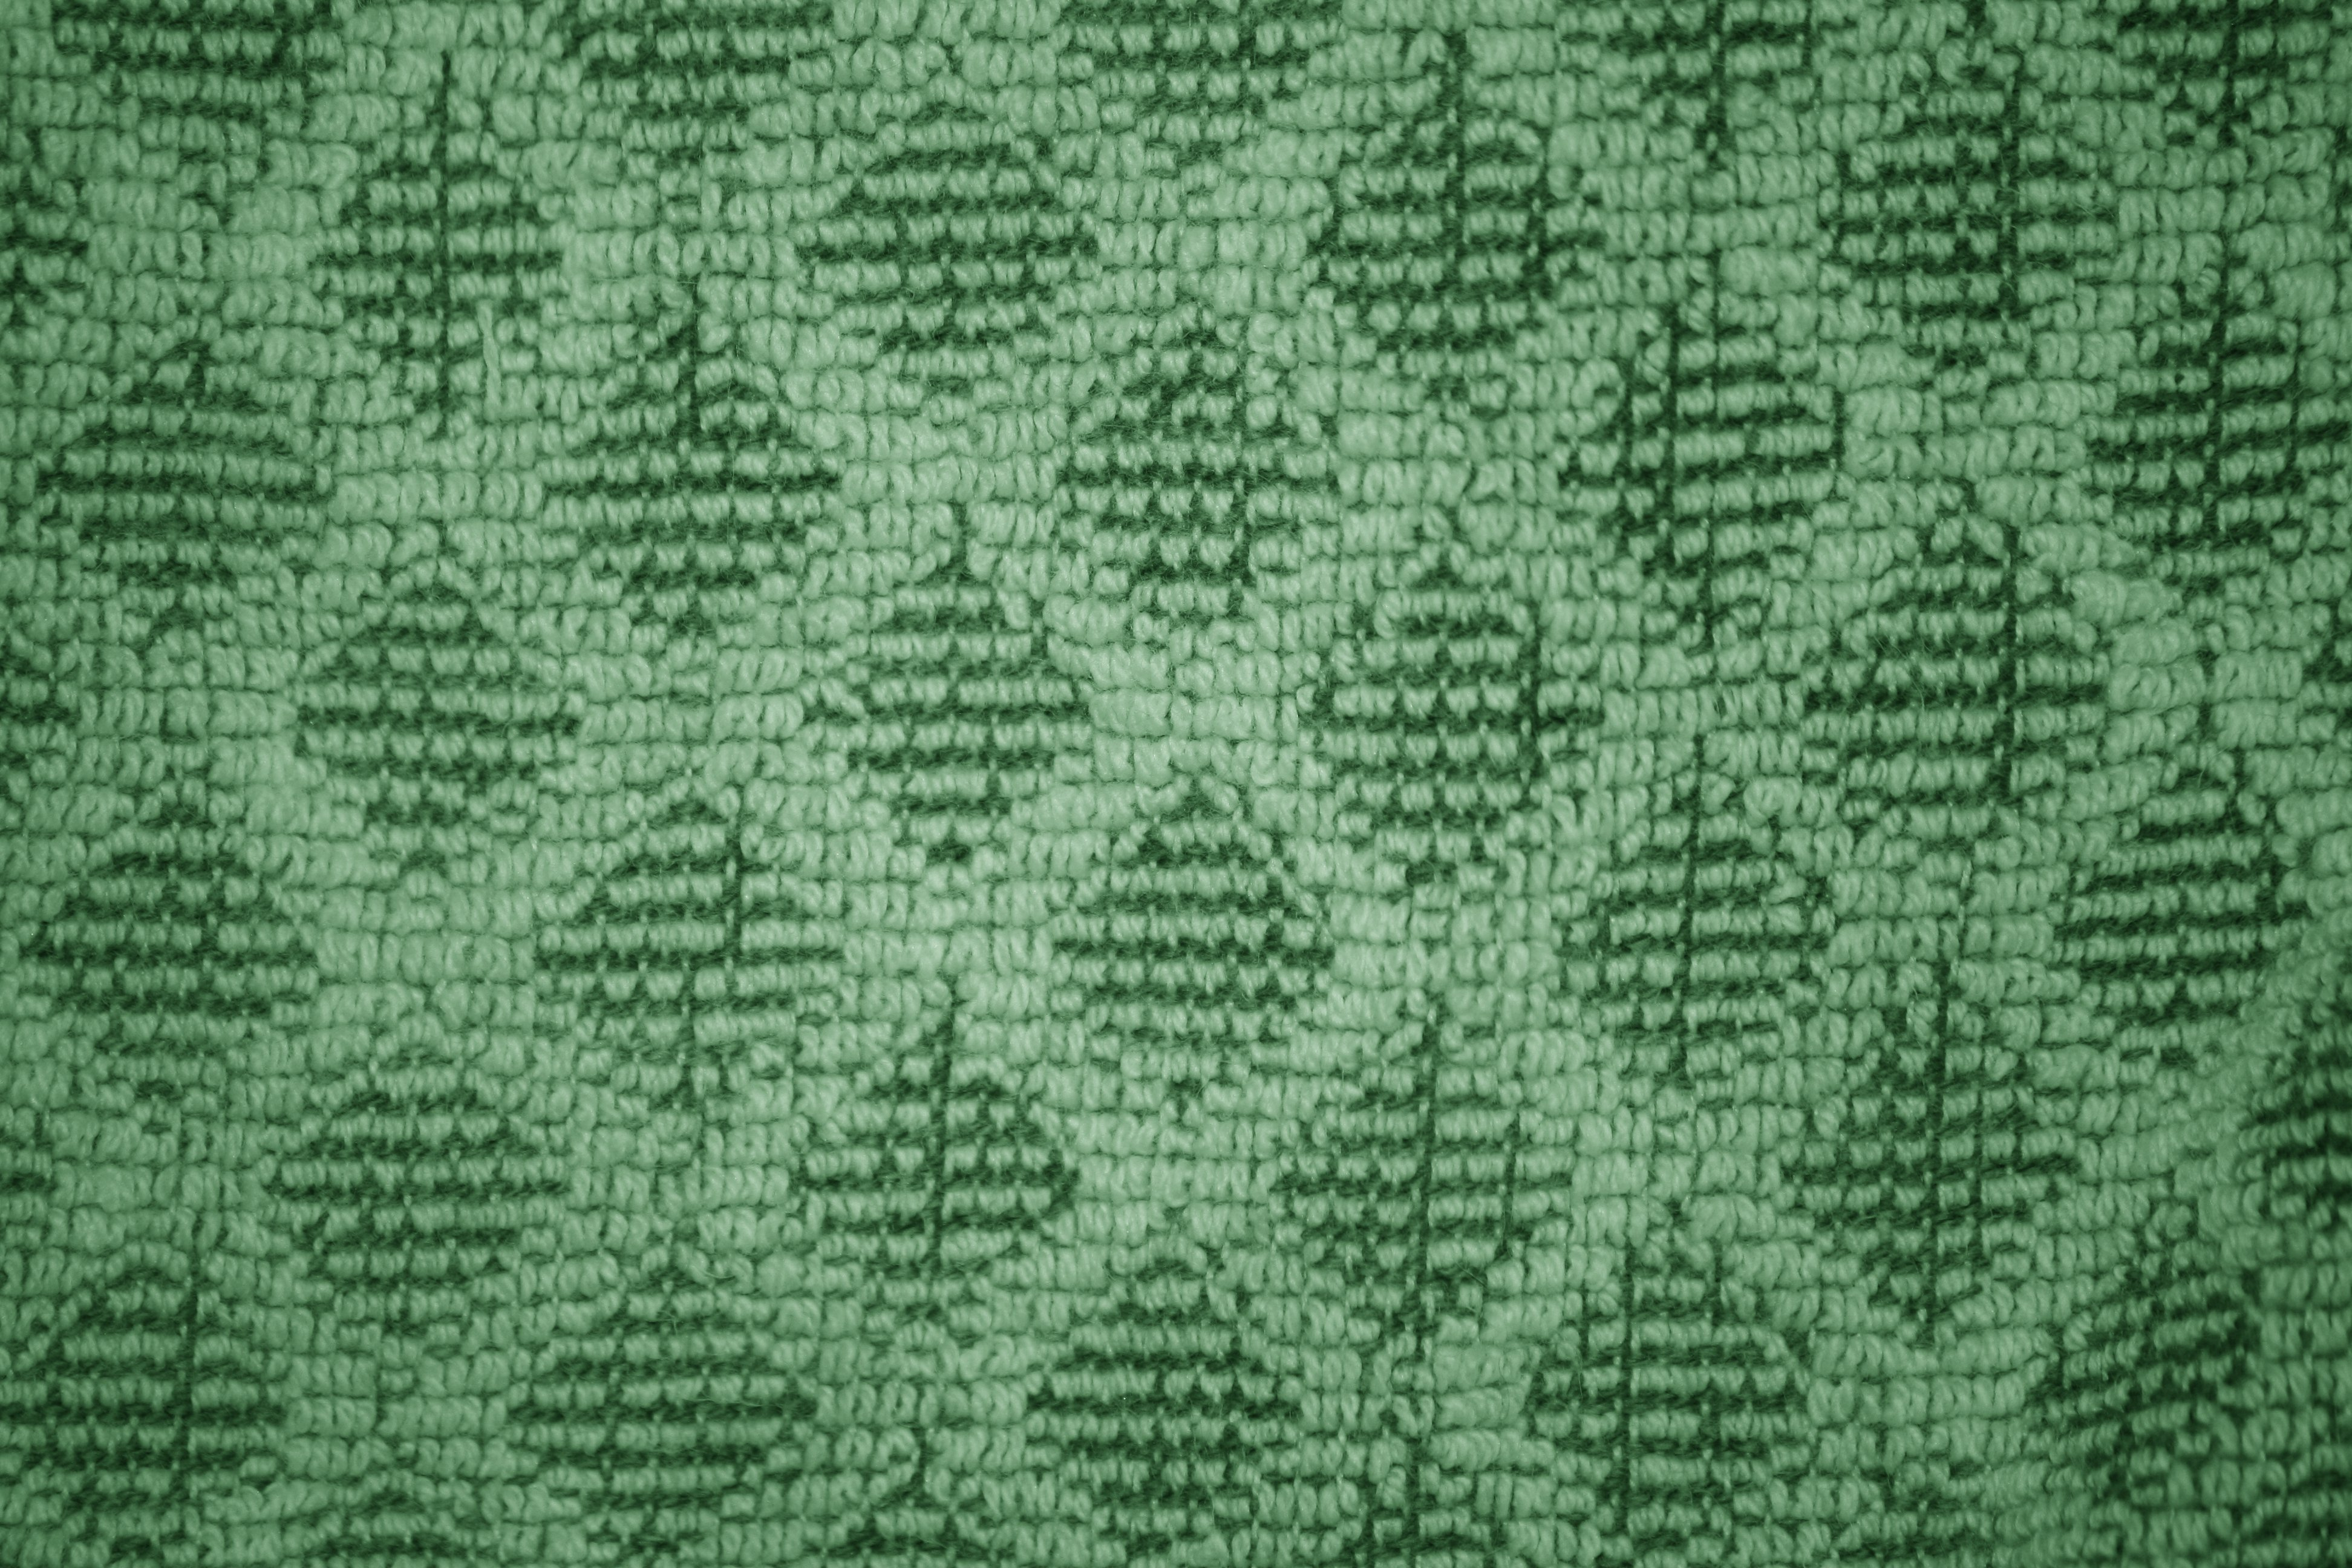 Green Dish Towel With Diamond Pattern Close Up Texture